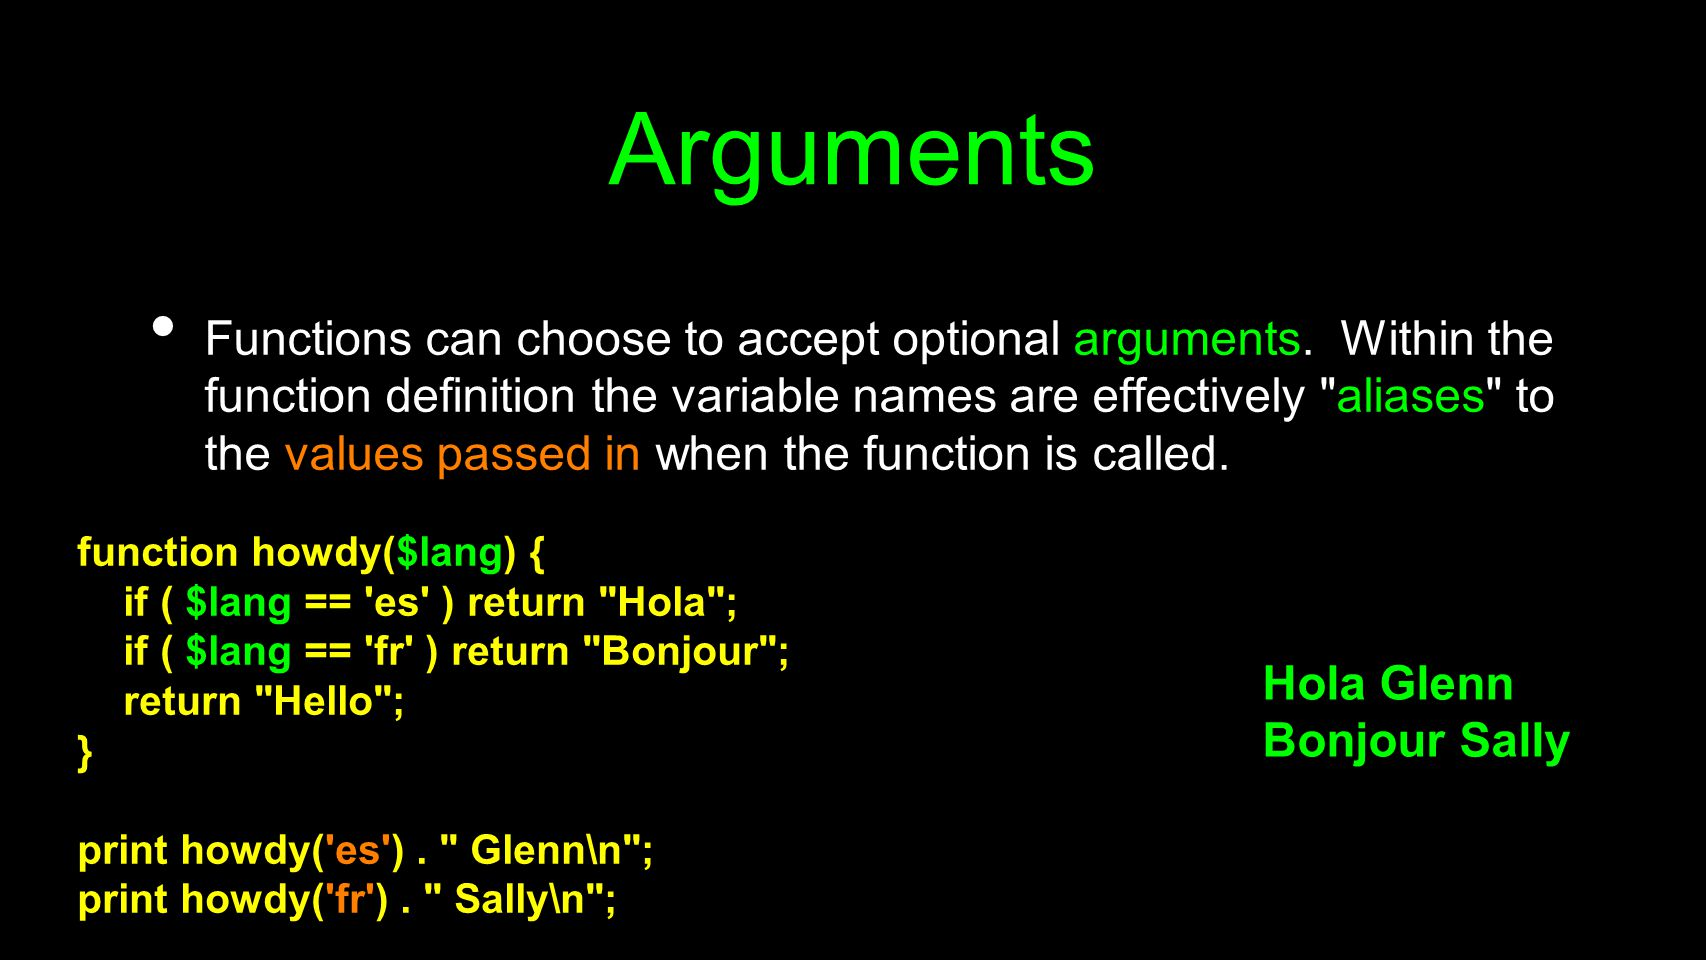 Arguments Functions can choose to accept optional arguments. Within the function definition the variable names are effectively